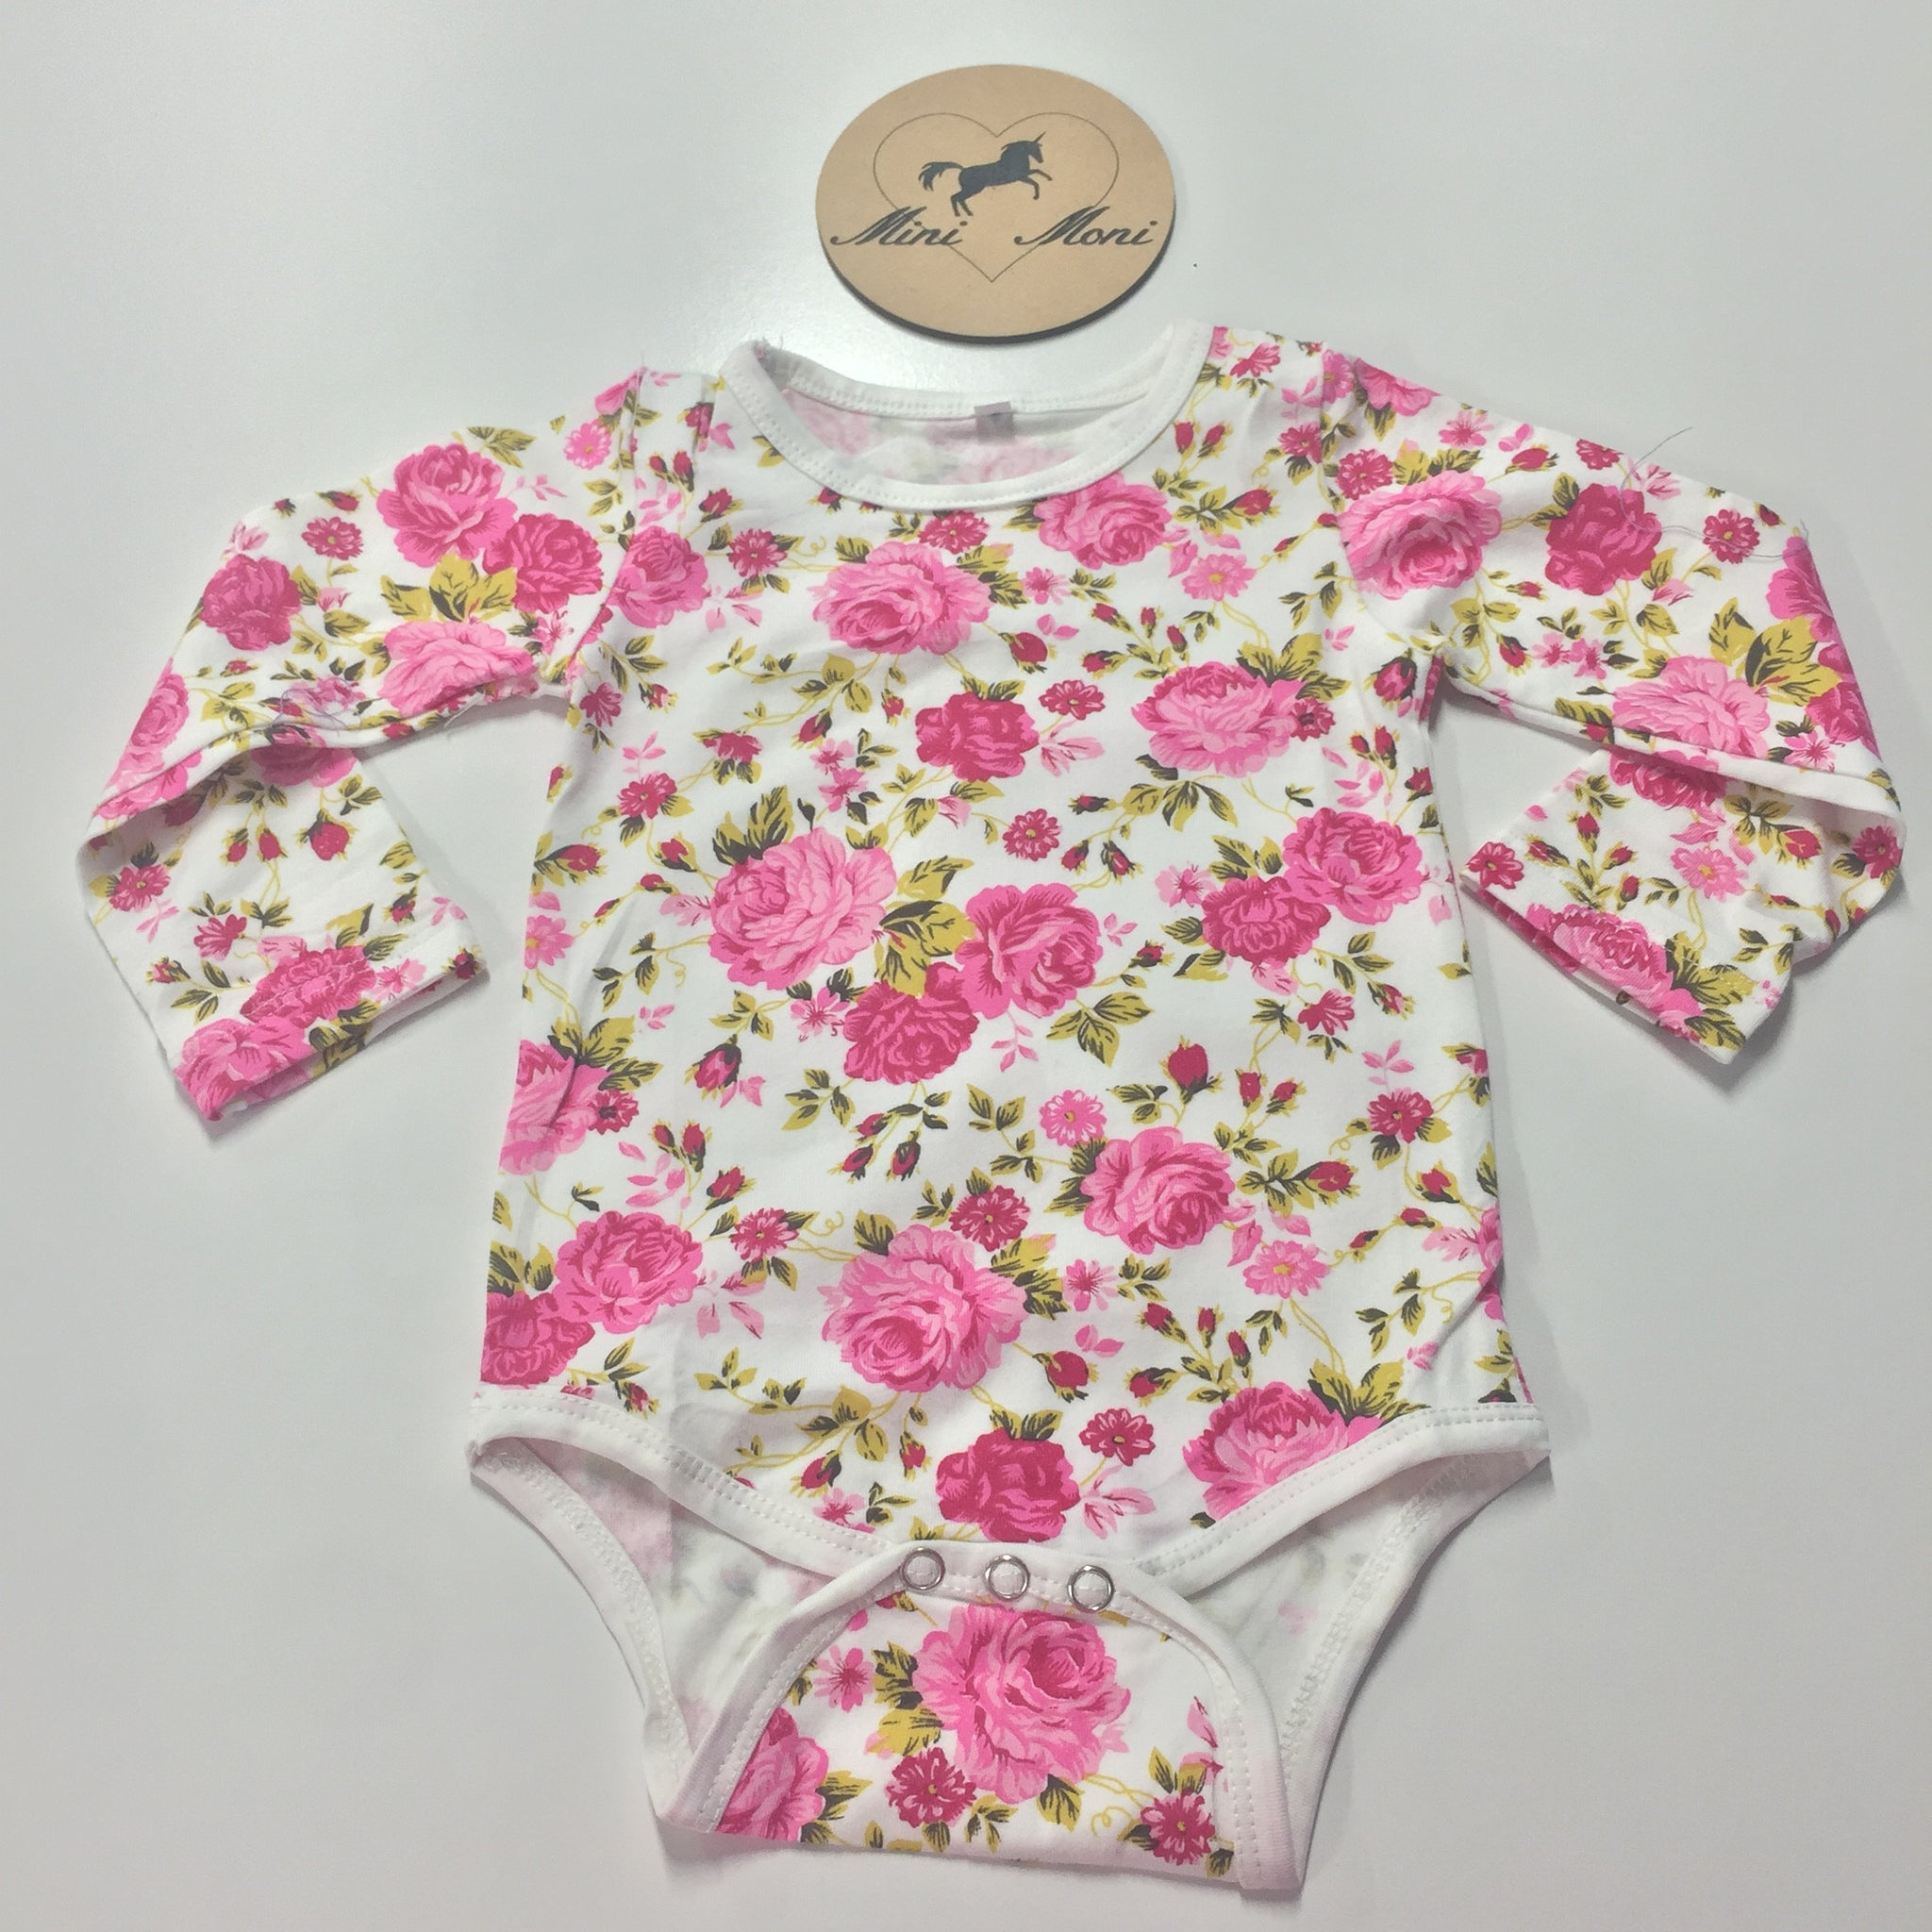 Cotton Spandex Bodysuits - Patterned Long Sleeve